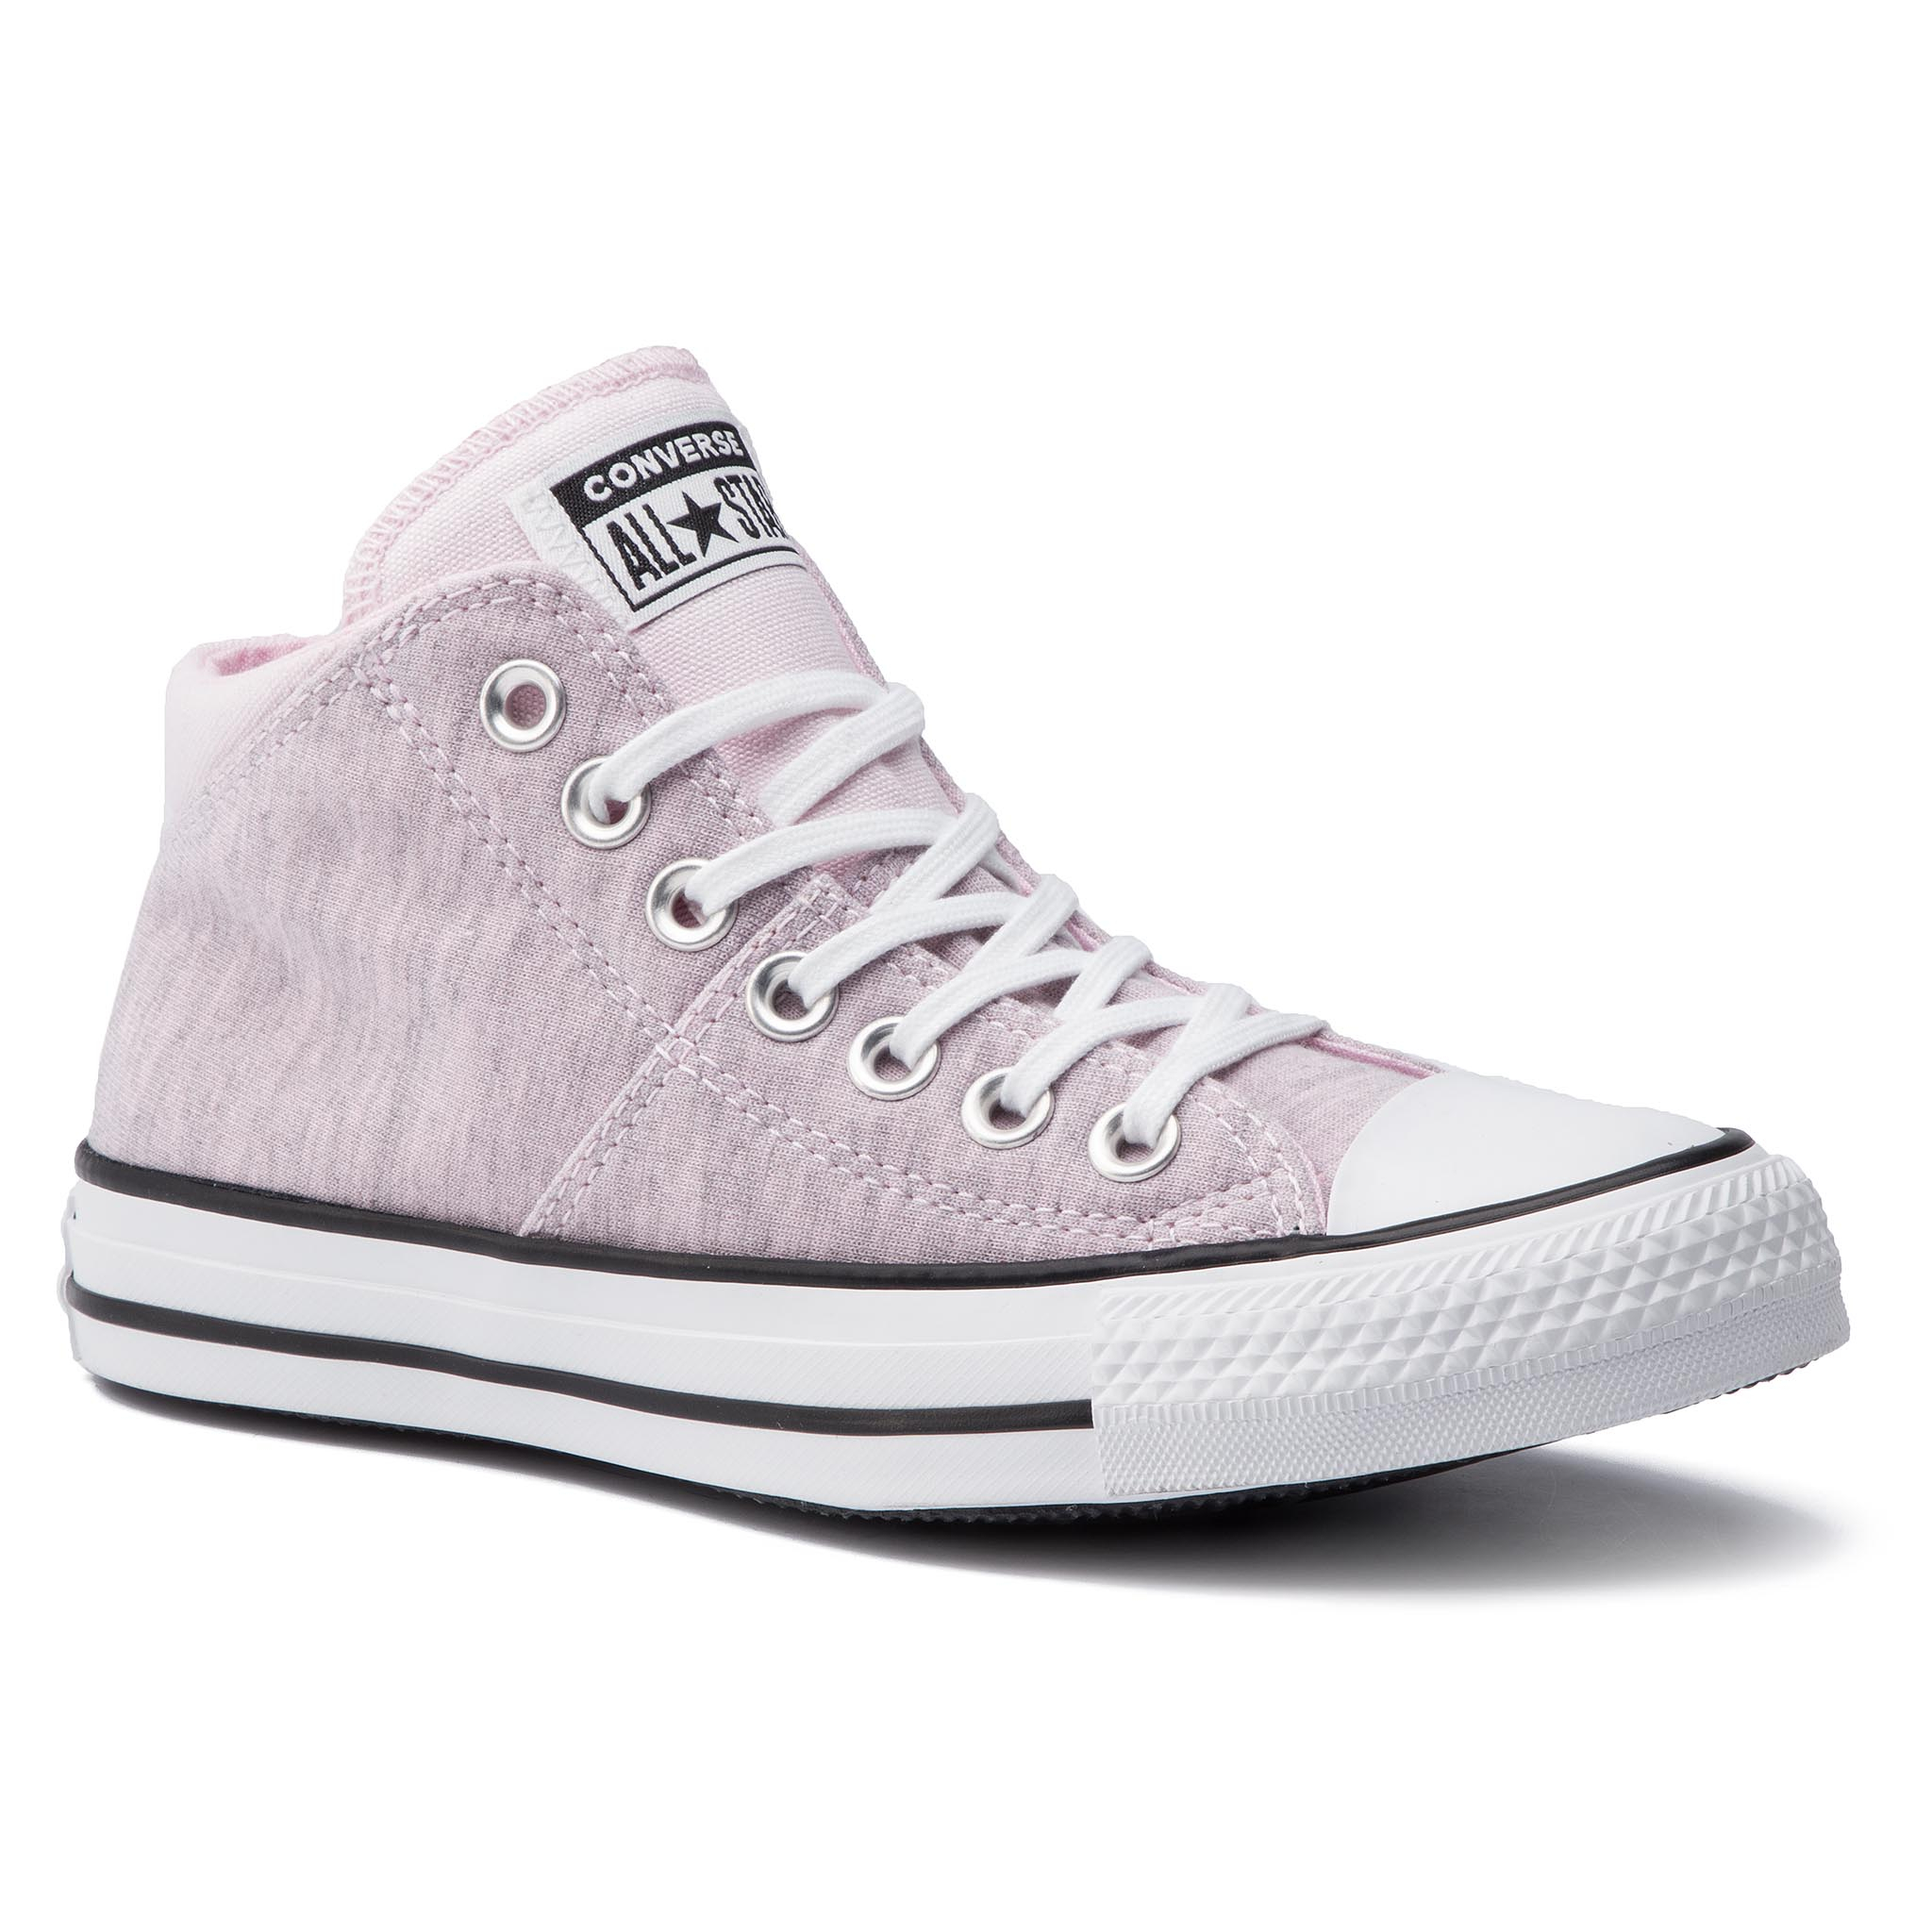 Teniși Converse - Ctas Madison Mid 563450c Pink Foam/White/Black imagine epantofi.ro 2021